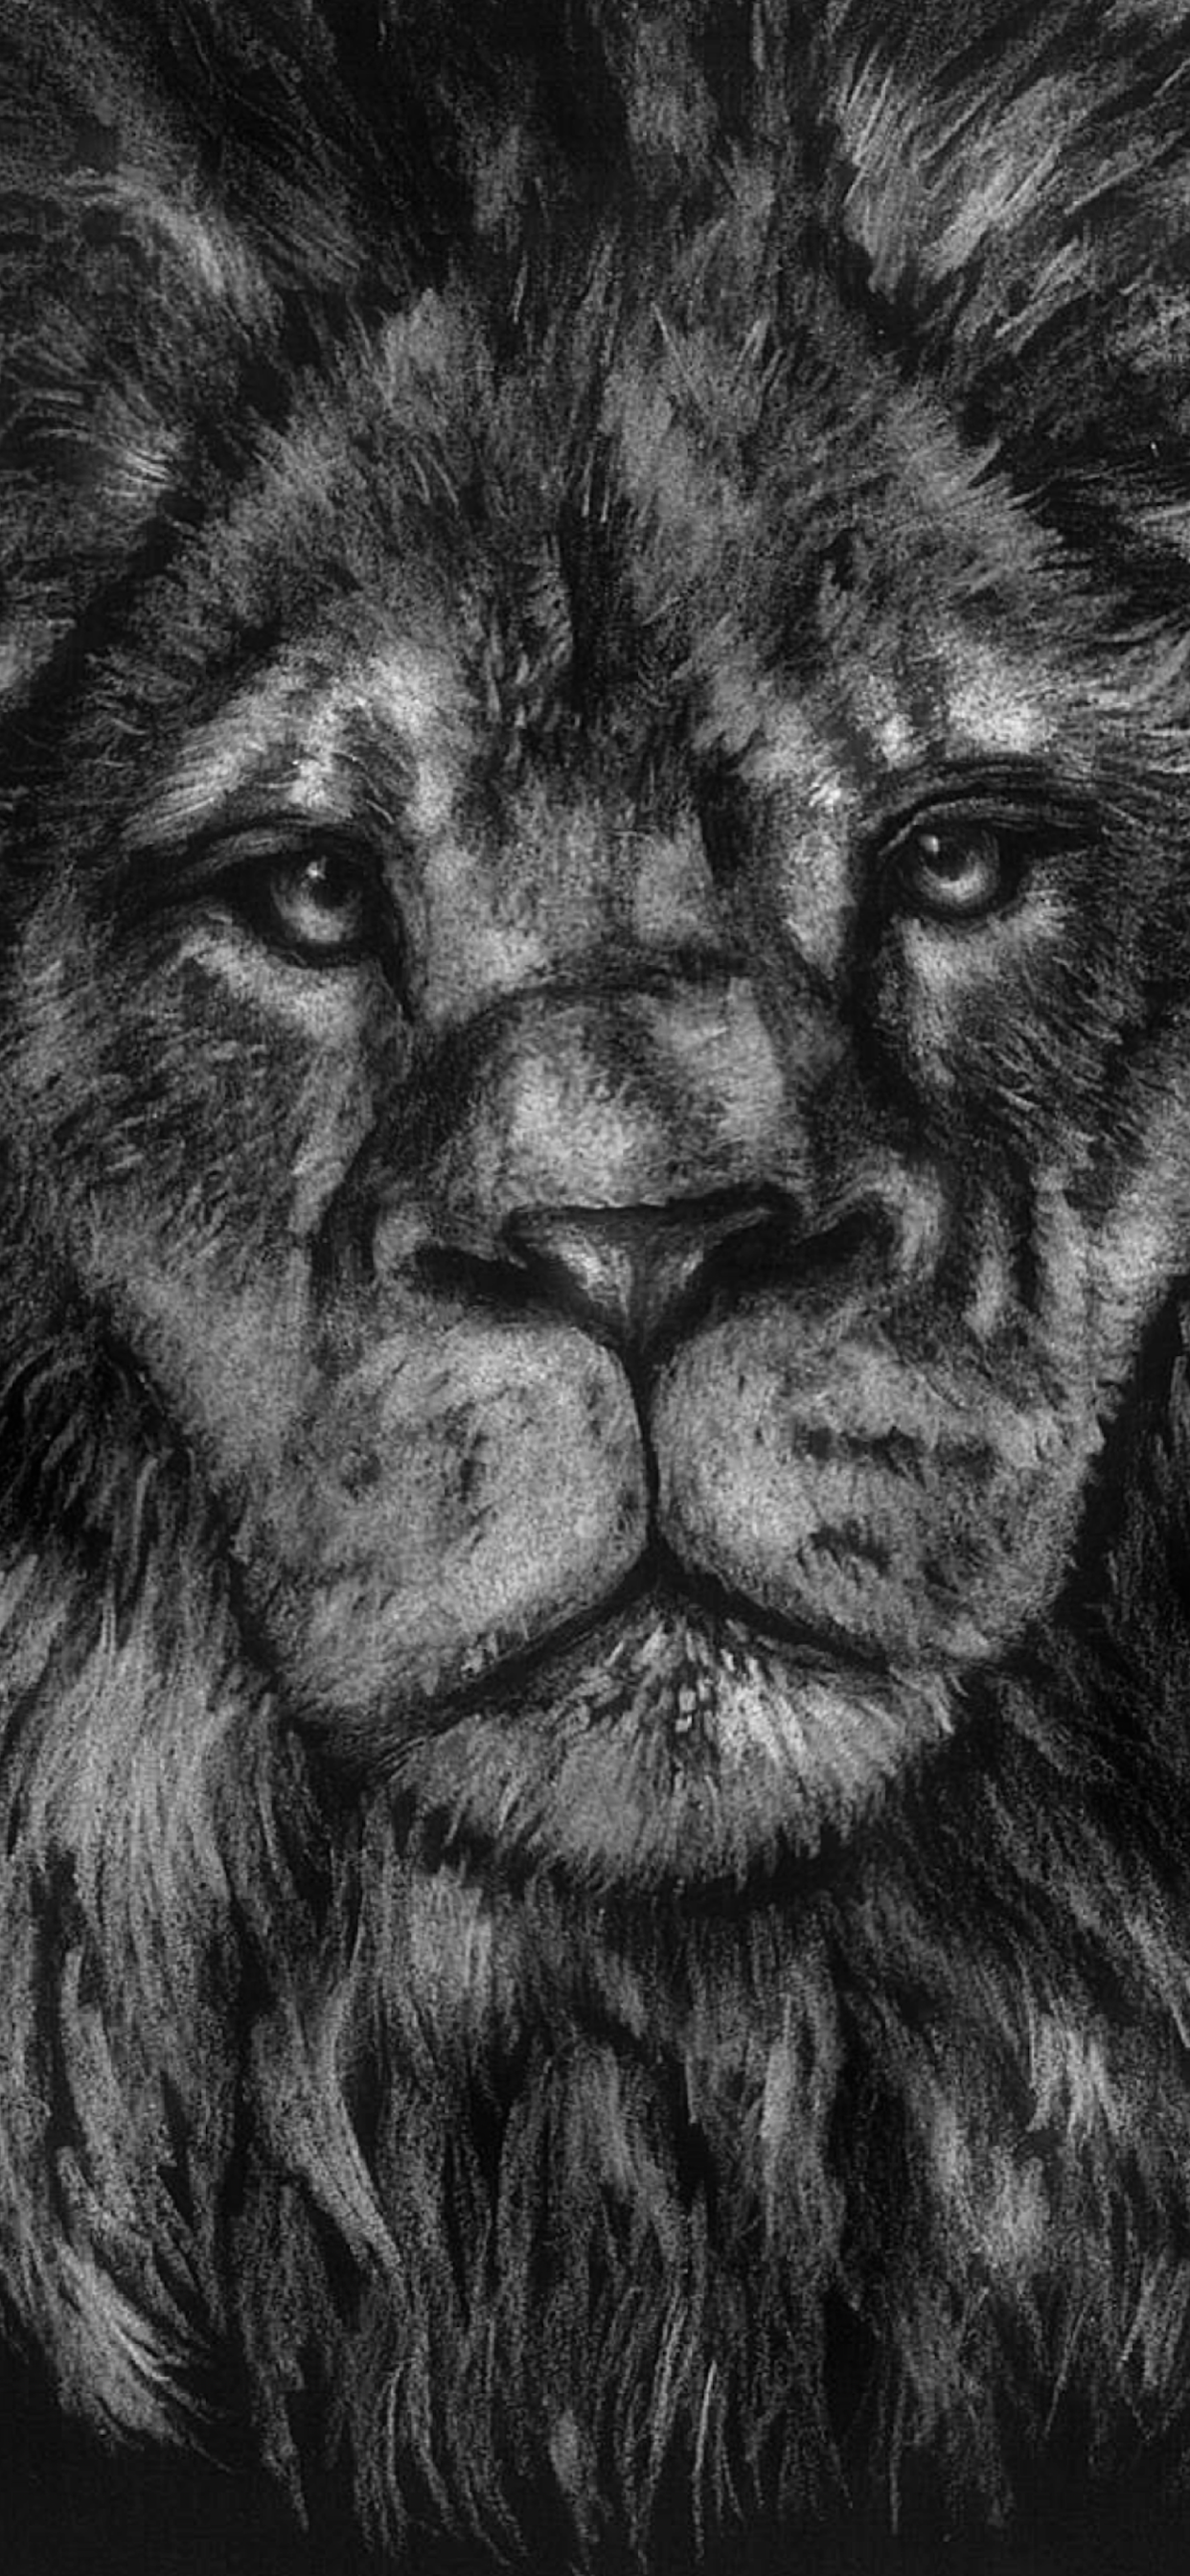 iPhone wallpapers illustration lion Fonds d'écran iPhone du 03/02/2020